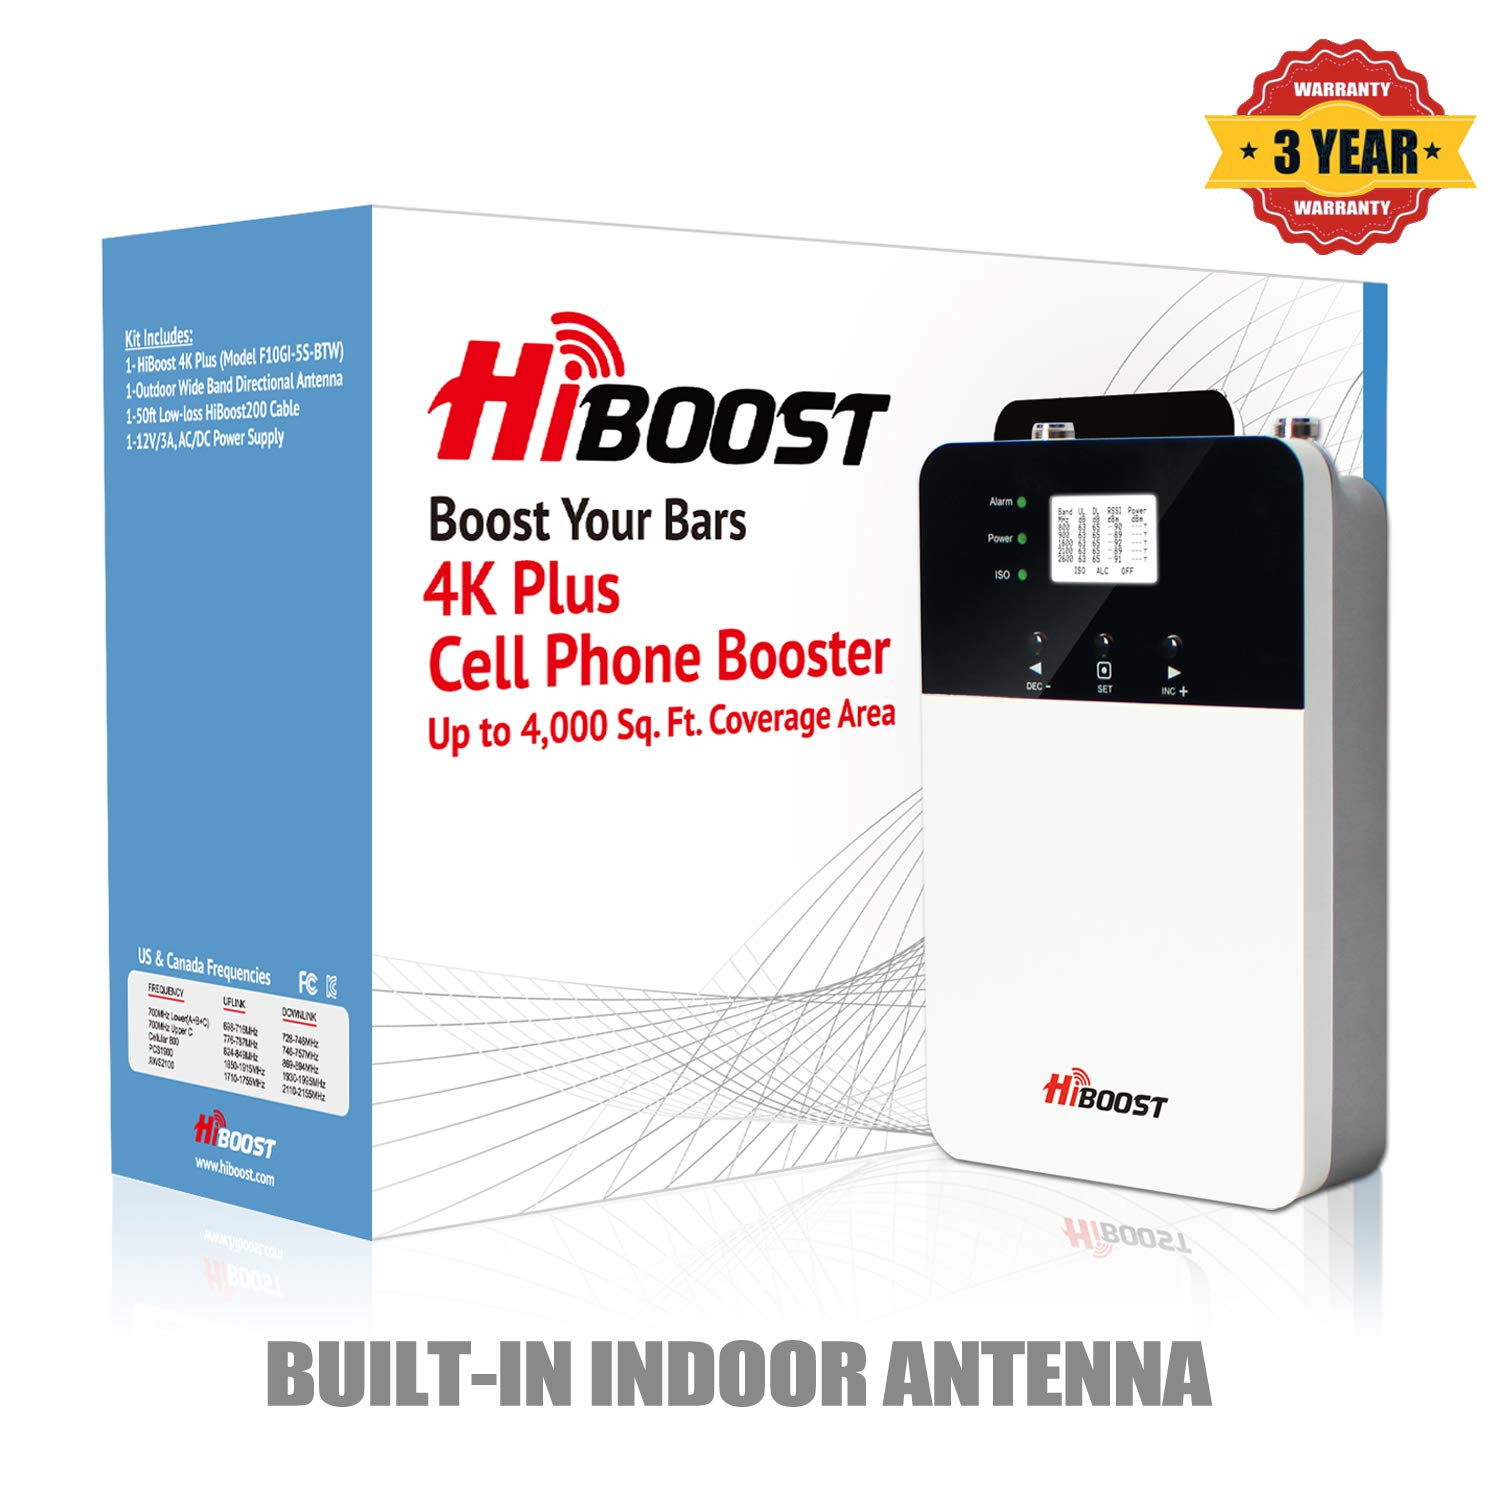 AT/&T HiBoost Signal Amplifier Cell Phone Signal for Home and Office up to 4,000 Sq.Ft,Mobile Signal Booster Repeater for Verizon T-Mobile 2G//3G//4G LTE-4K Plus Sprint Cell Phone Signal Booster